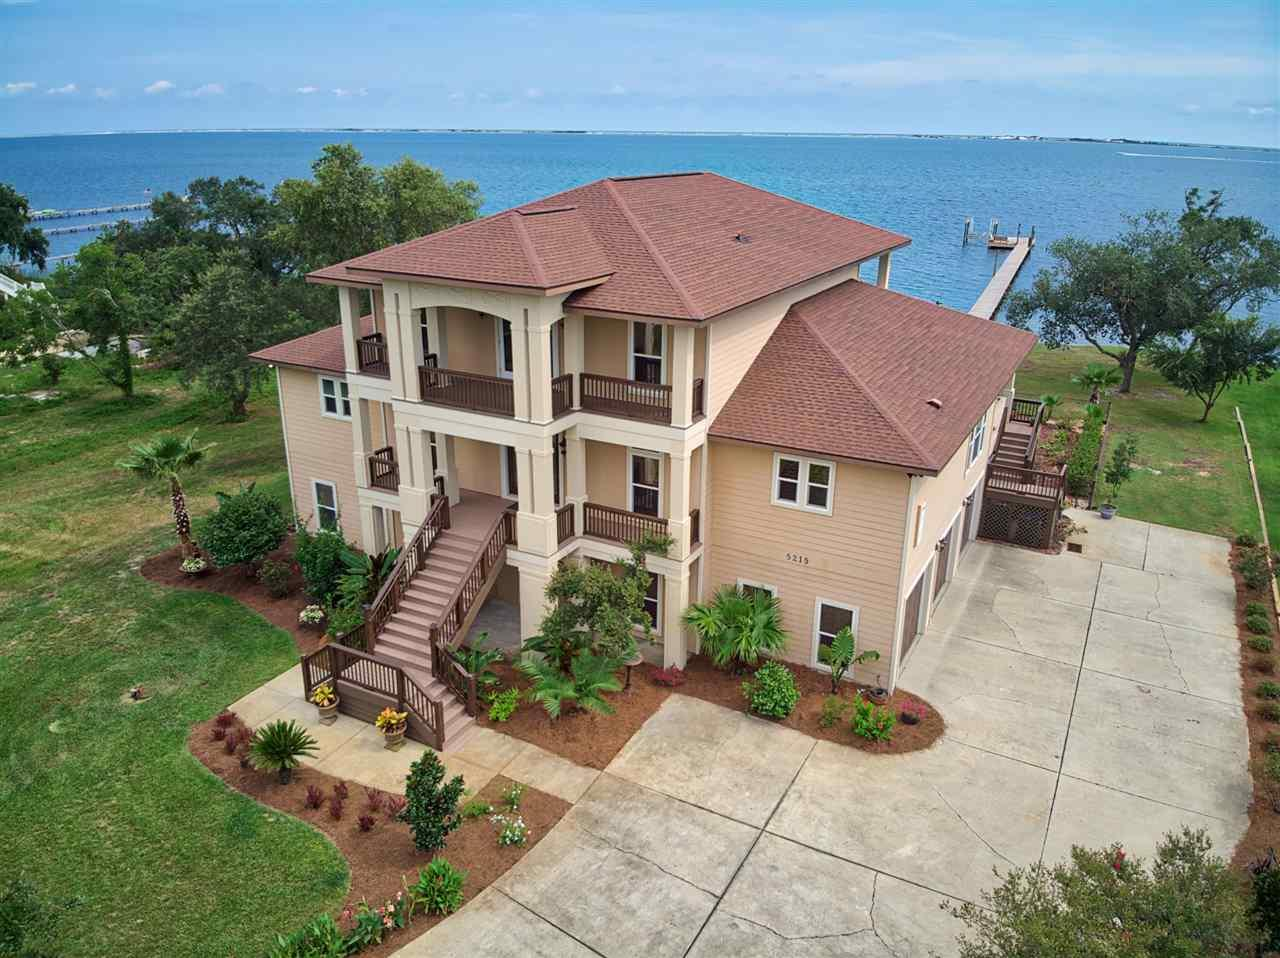 Welcome to paradise! This stunning custom built waterfront home is an entertainer's and boater's dream. The professional landscaping, gunite pool, beautiful stained front doors & large .69 acre lot gives this home impressive curb appeal. New rails and stairs throughout the exterior with fresh paint. The open floor plan is ideal for entertaining and encompasses a spacious dining & kitchen and living areas. Water views from almost every room in the house with 10' ceilings throughout. The kitchen is stunning with granite countertops, custom cabinets, 6 burner gas stove, endless cabinets/storage, pot filler, filtered instant hot & cold water, Italian travertine backsplash, wine/drink fridge and ice maker. The spacious pantry off the kitchen has another fridge & more cabinet space. Beautiful built in shelving in the living room with a two sided gas fireplace. Wake up in the oversized master bedroom to a sunrise over the water every morning. Master bath has a jacuzzi tub, separate travertine walk in shower, double vanity, granite countertops and a large walk-in closet with wood shelving and is wired for a center island. Laundry is off of the master closet for convenience. 3 large bedrooms upstairs with 2 full baths plus extra living space for an office, reading area or workout space. 2 spacious walk in closets upstairs as well. Home has 2 closets that can be converted into an elevator. On the bottom floor, off of the pool deck is a 800 sqft cooled living space and a full bath. This room is wired for a projector, perfect for kids hangout space!! There is also an outdoor kitchen making the 14ft wide porches perfect for outdoor living & dining. Watch the annual cigar boat races, blue angel shows & sailboat regatta from your back deck!! New dock in 2018 with 10,000lb boat lift & green fishing lights at the end. Home has 3 HVACs, 2 tankless hot water heaters, 3 car garage, surround sound & plantation shutters. Don't miss your chance to live in this dream home!